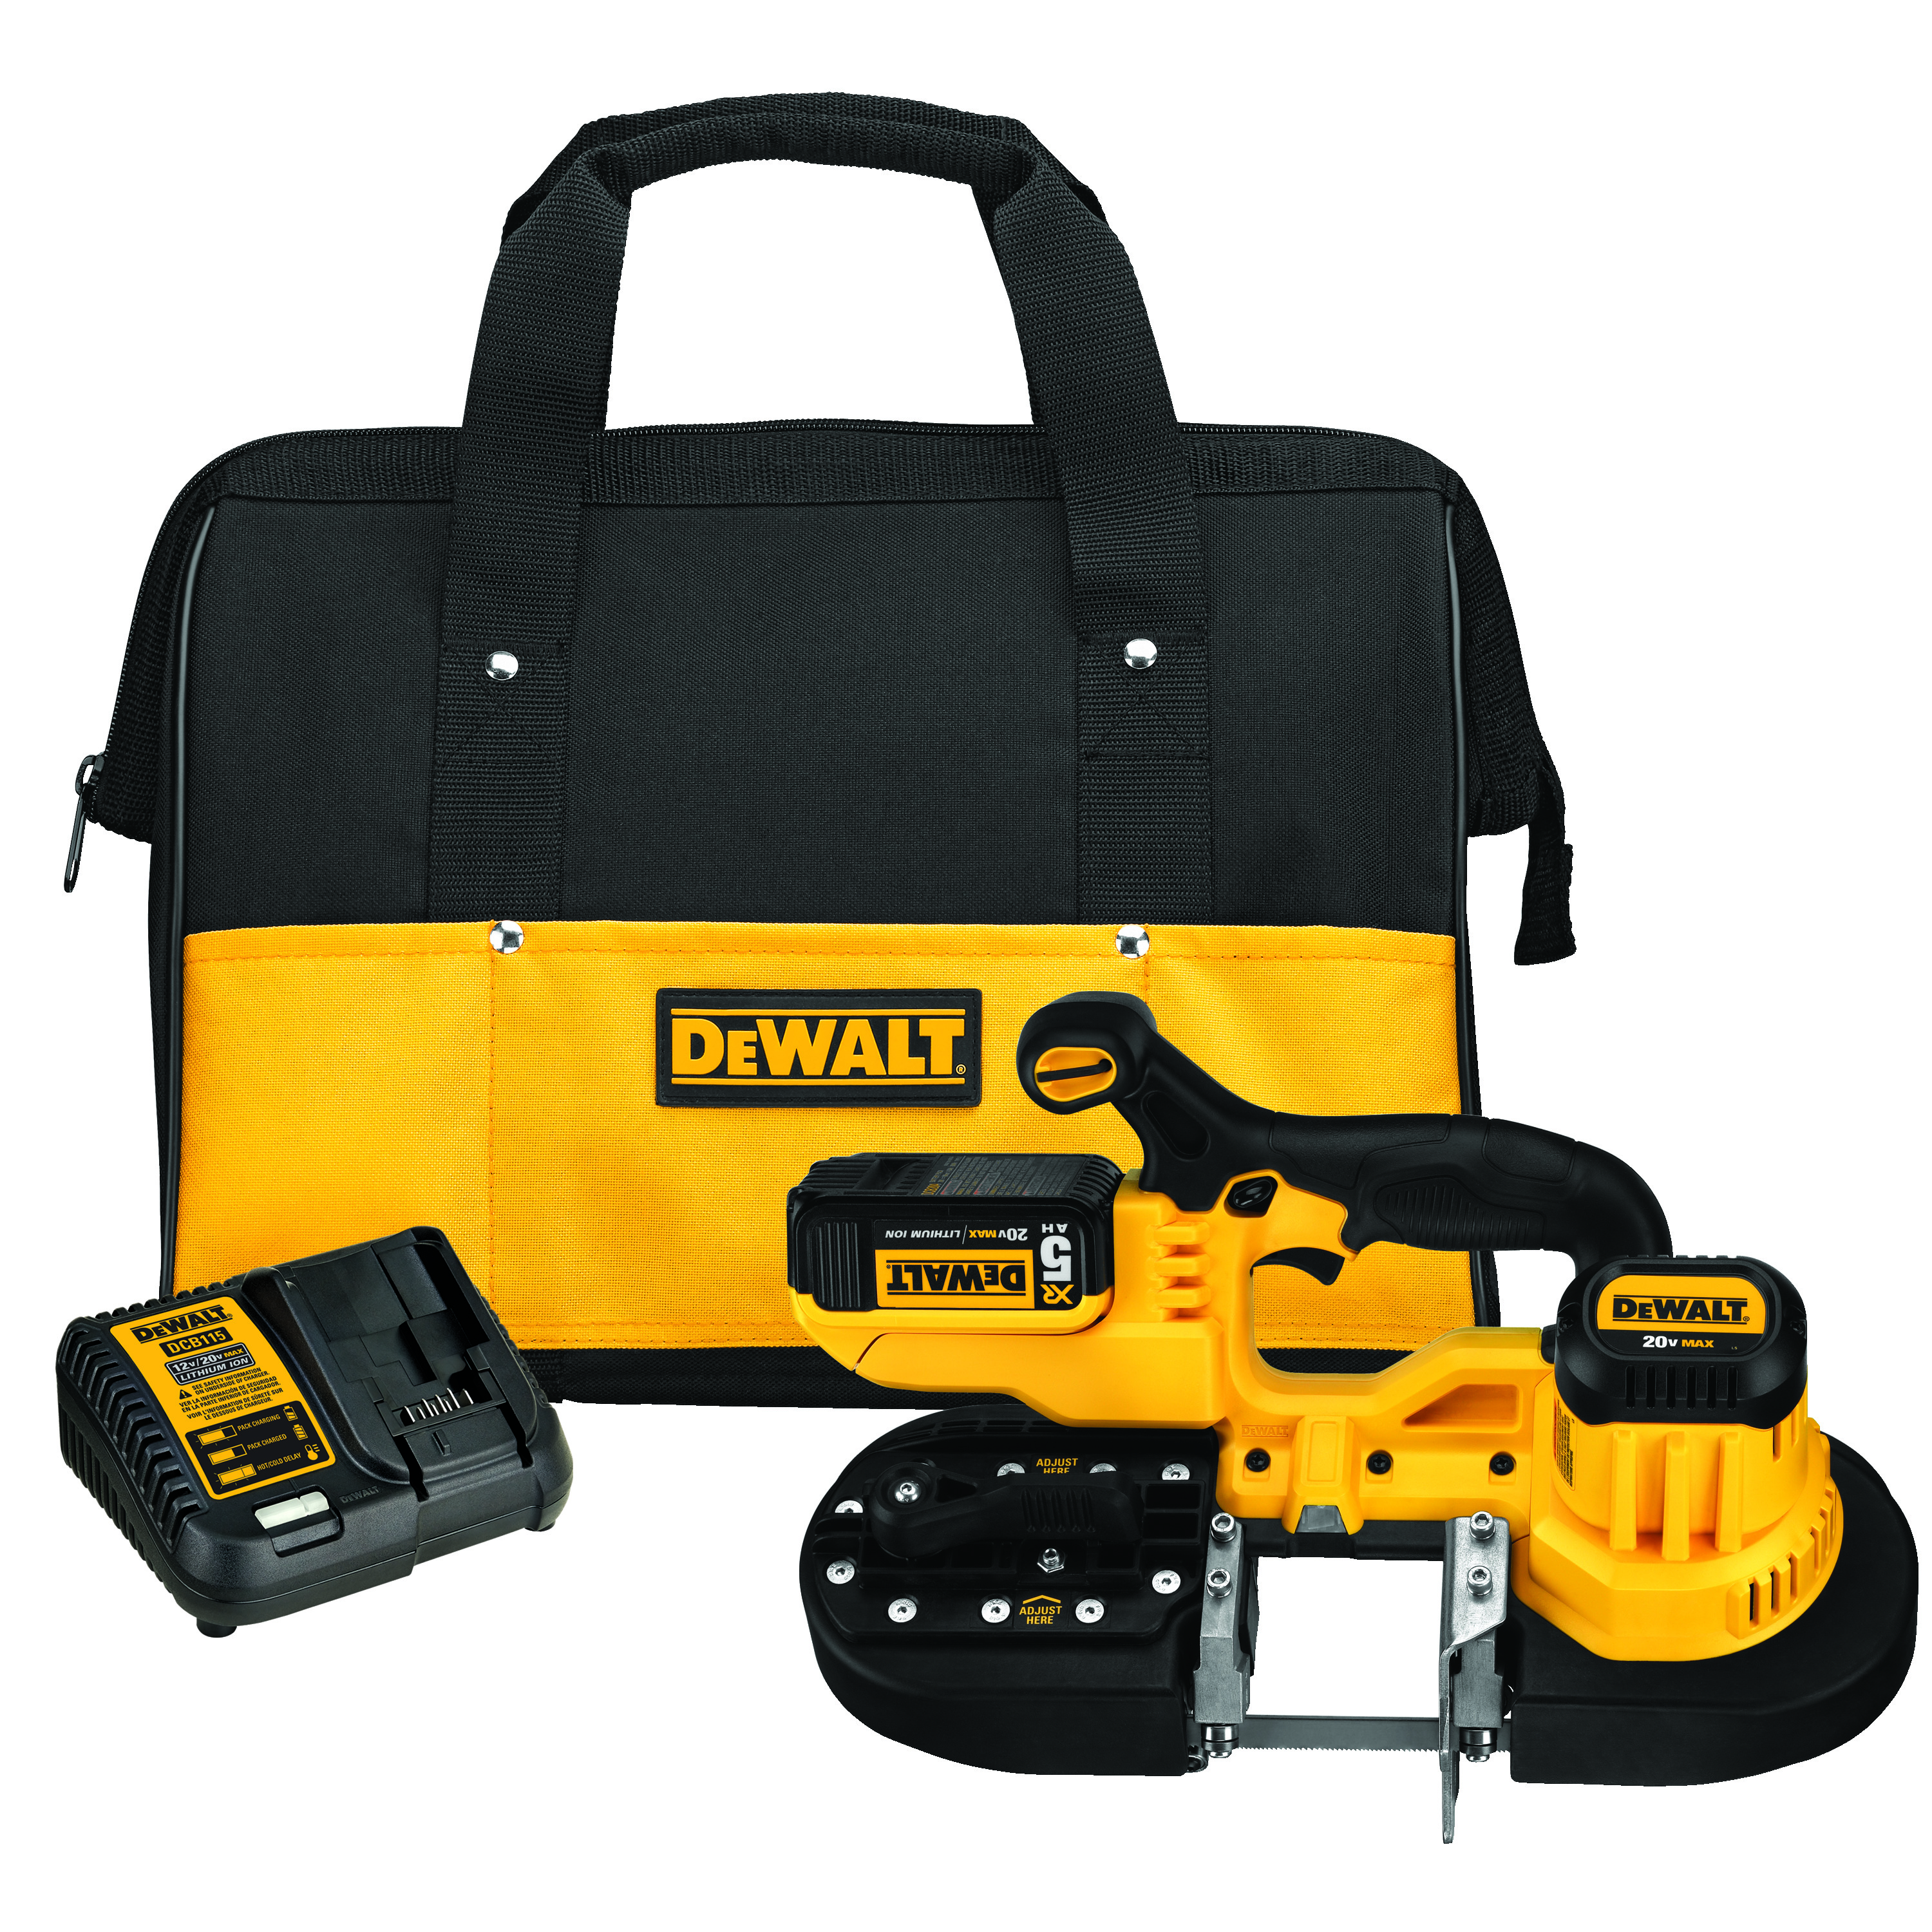 DeWALT® DCS371P1 Max® Cordless Band Saw Kit, 2-1/2 in Cutting, 32-7/8 in L Blade, 20 VAC, 5 Ah Lithium-Ion Battery